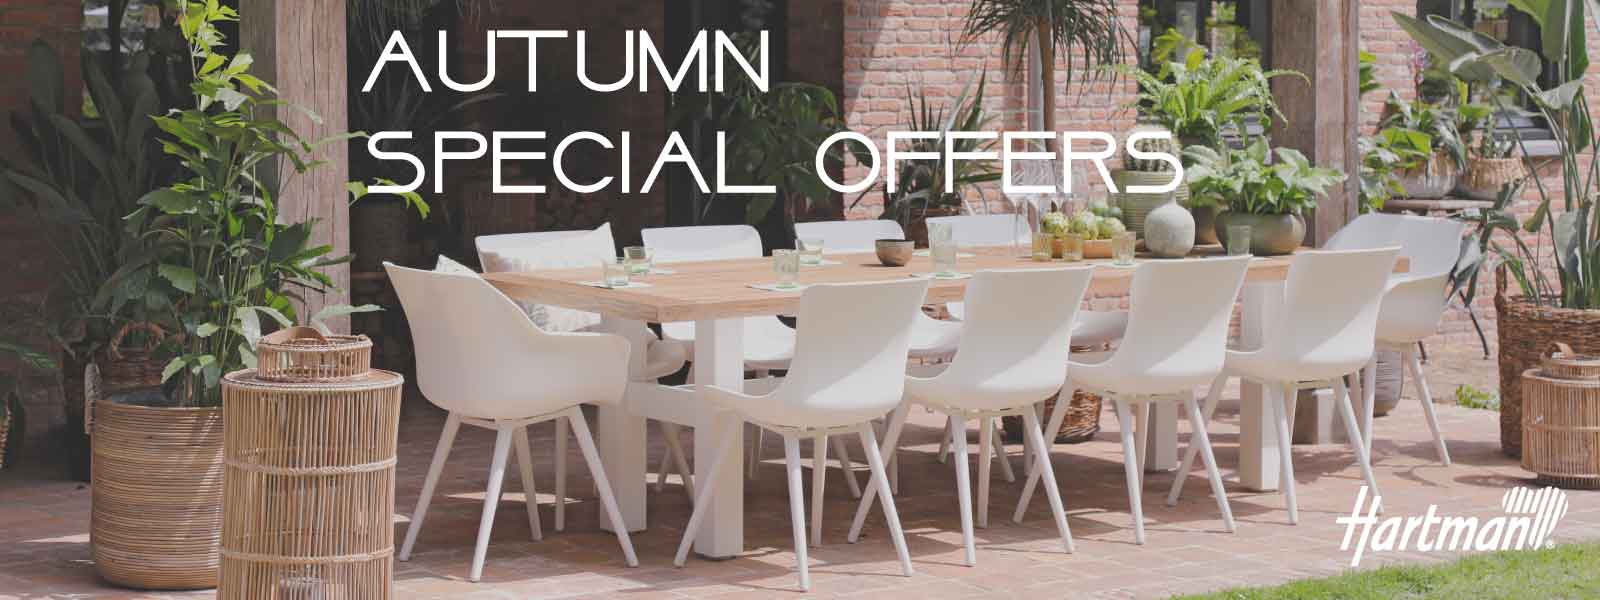 SPECIAL-OFFER-AUTUMN-2018